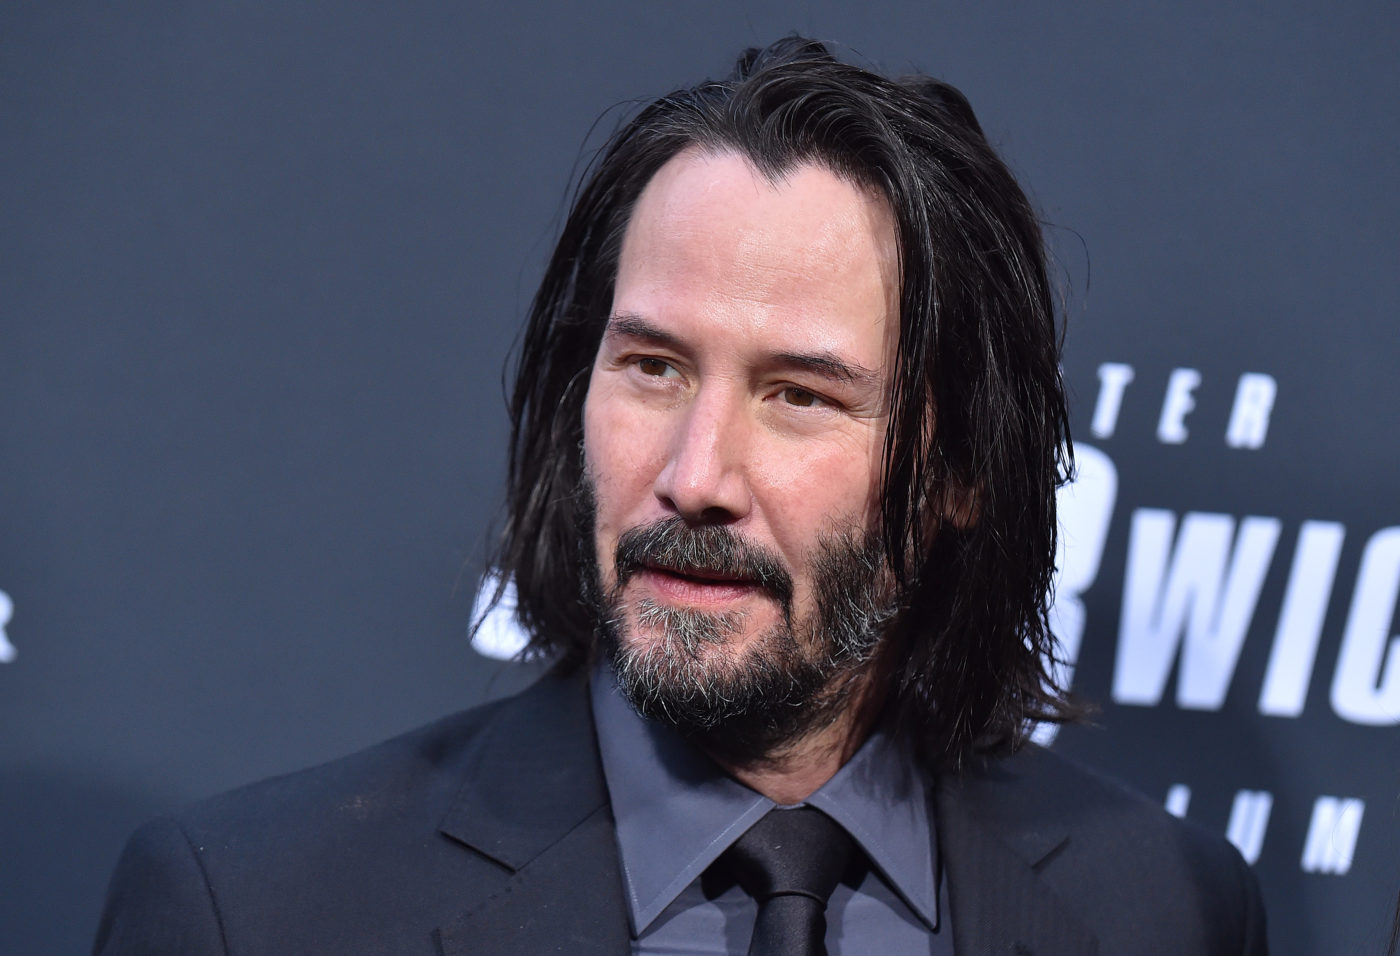 LightWorkers Did You Know That Keanu Reeves Discreetly Donates to Children's Hospitals?